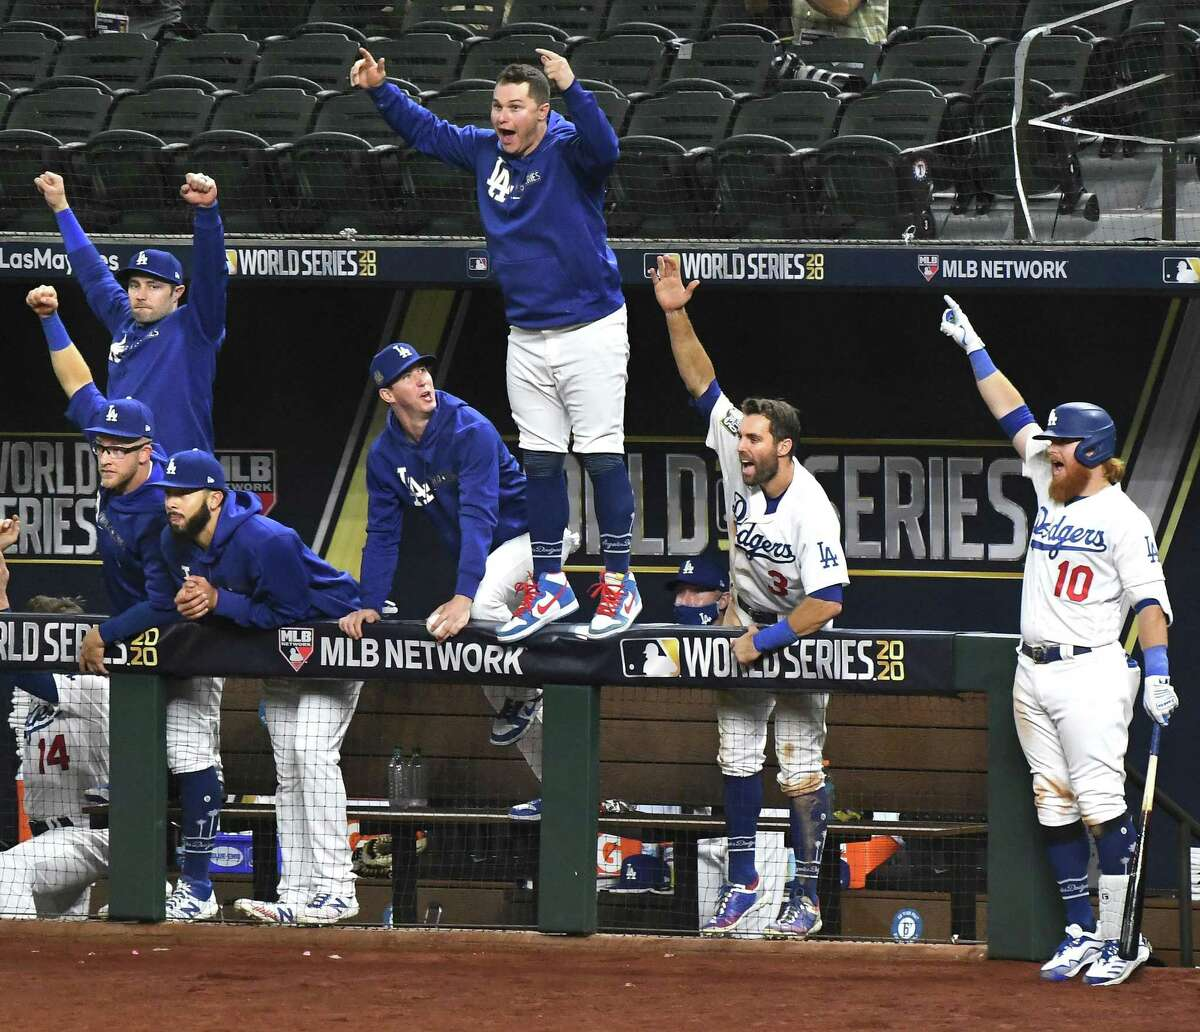 The Dodgers' dugout celebrates Mookie Betts' solo home run in the sixth inning in Game 1 at Globe Life Field in Arlington. The Dodgers, in their third World Series in four years, are seeking their first title since 1988.